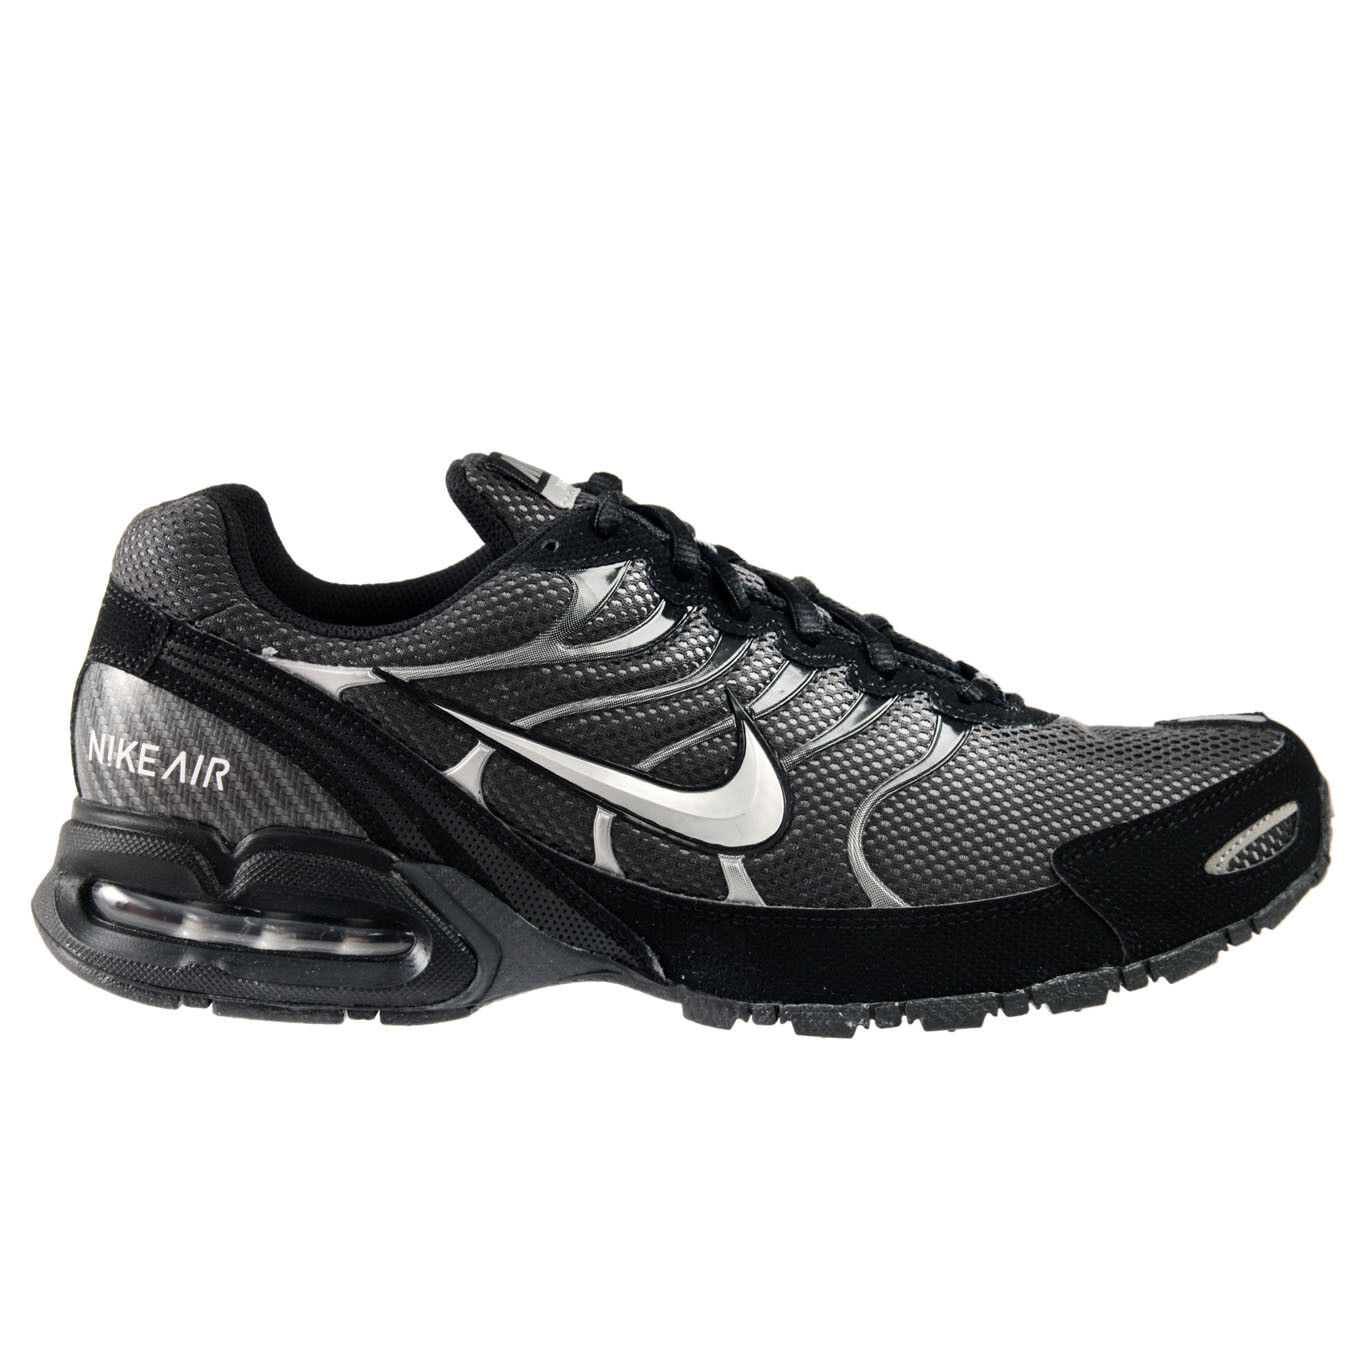 Nike Air Max Torch 4 Mens 343846-002 Black Anthracite Running shoes Size 14